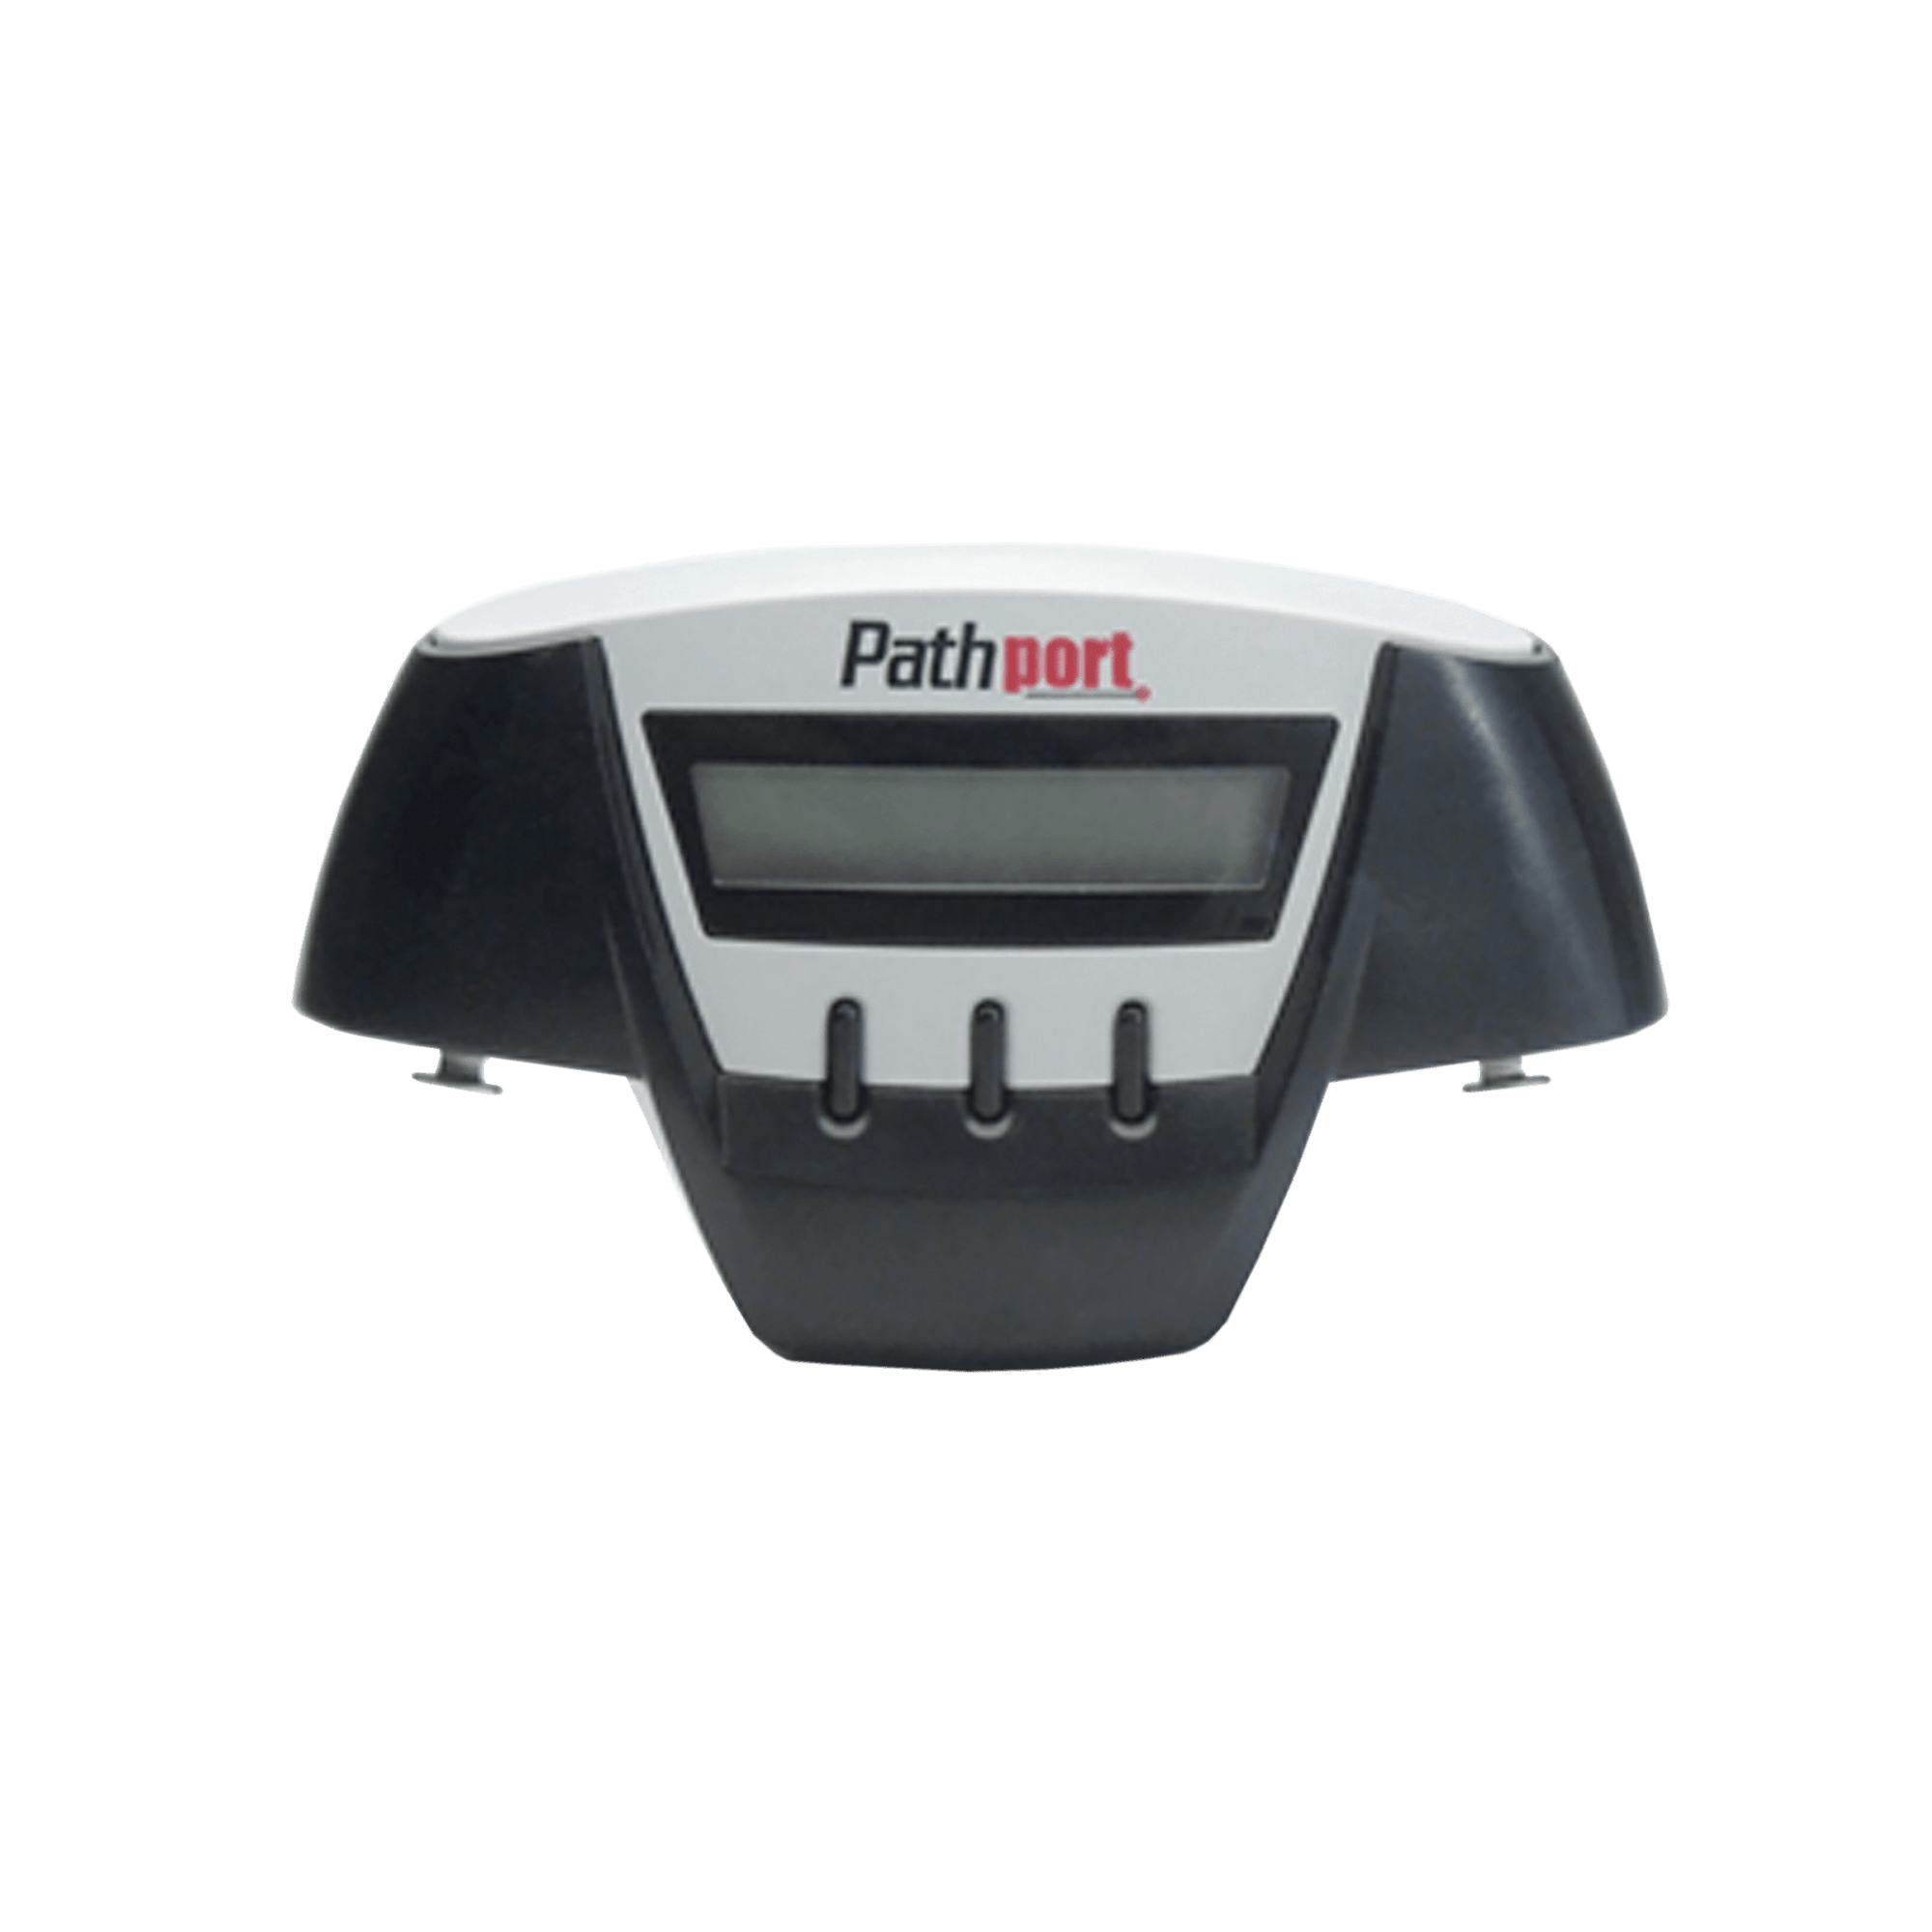 Pathway Connectivity Pathport Touring Edition